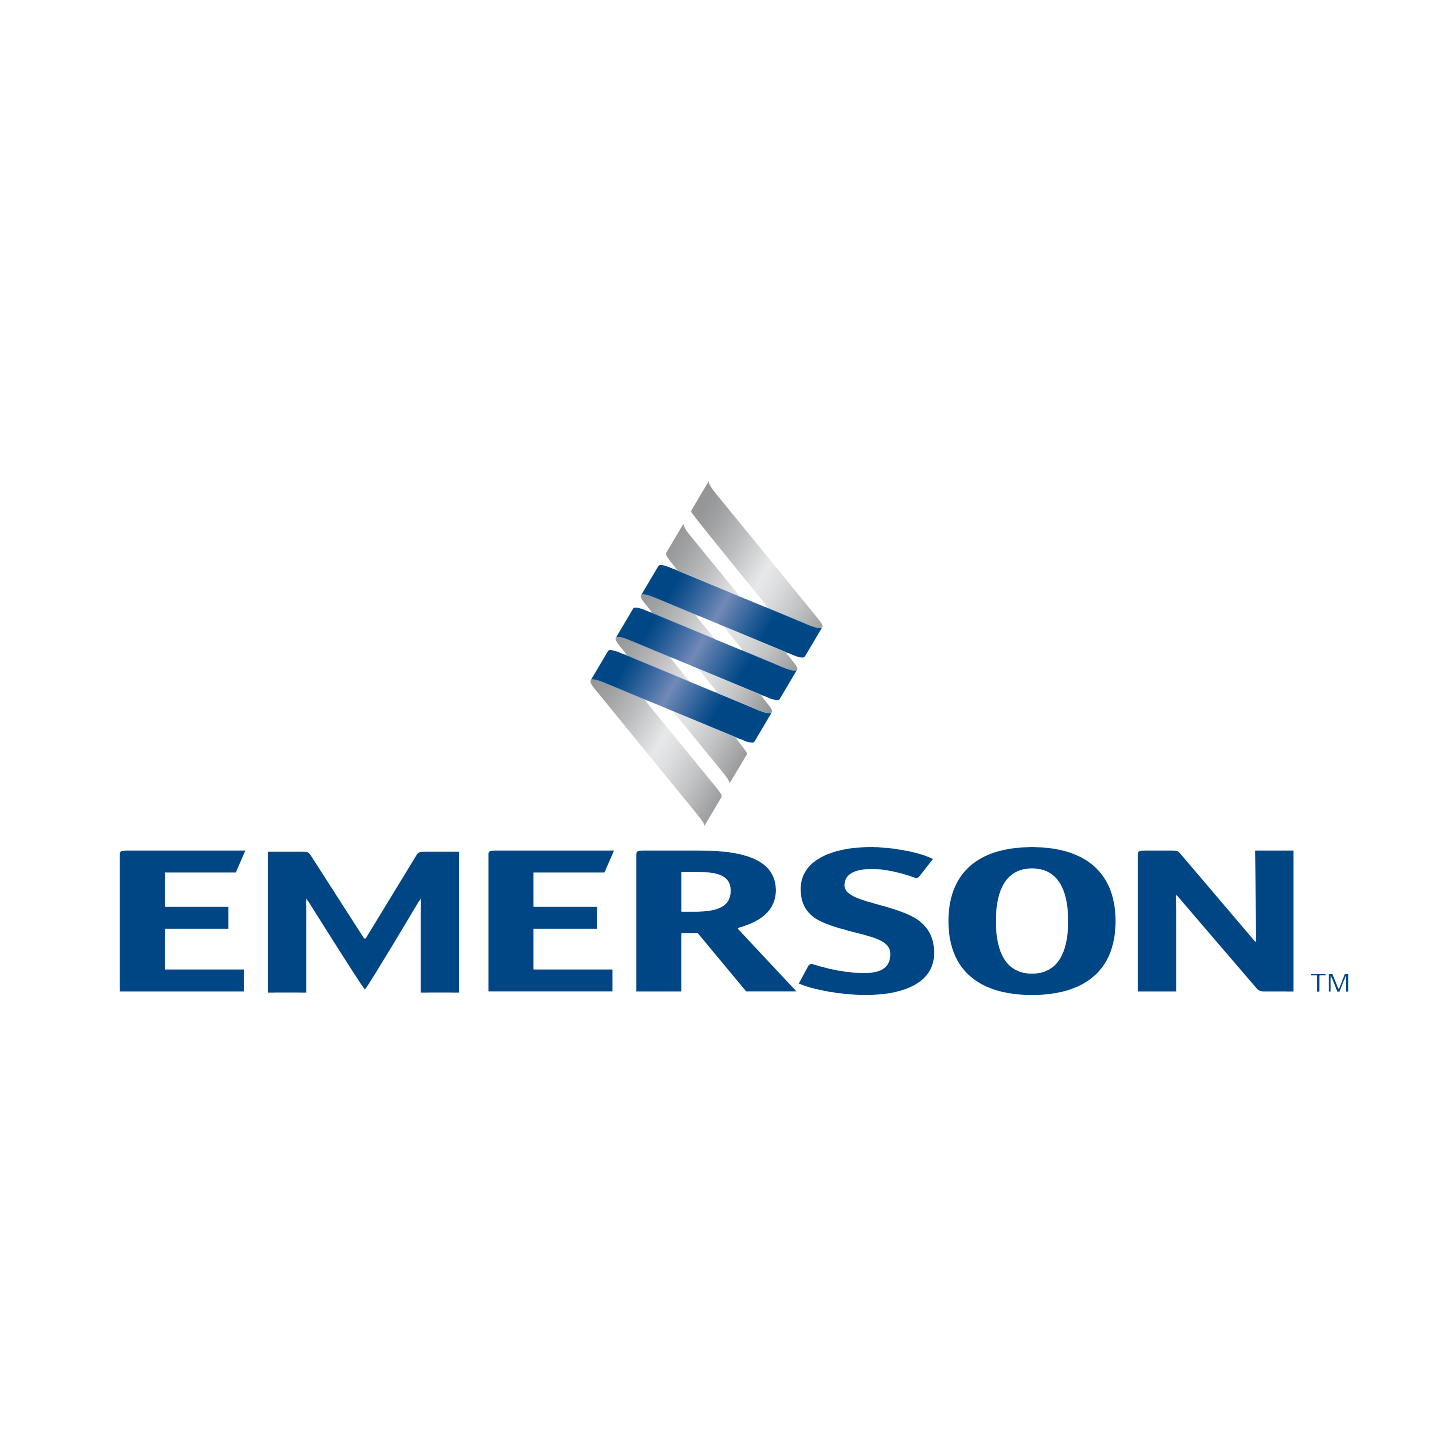 Emerson_Electric_Company.svg